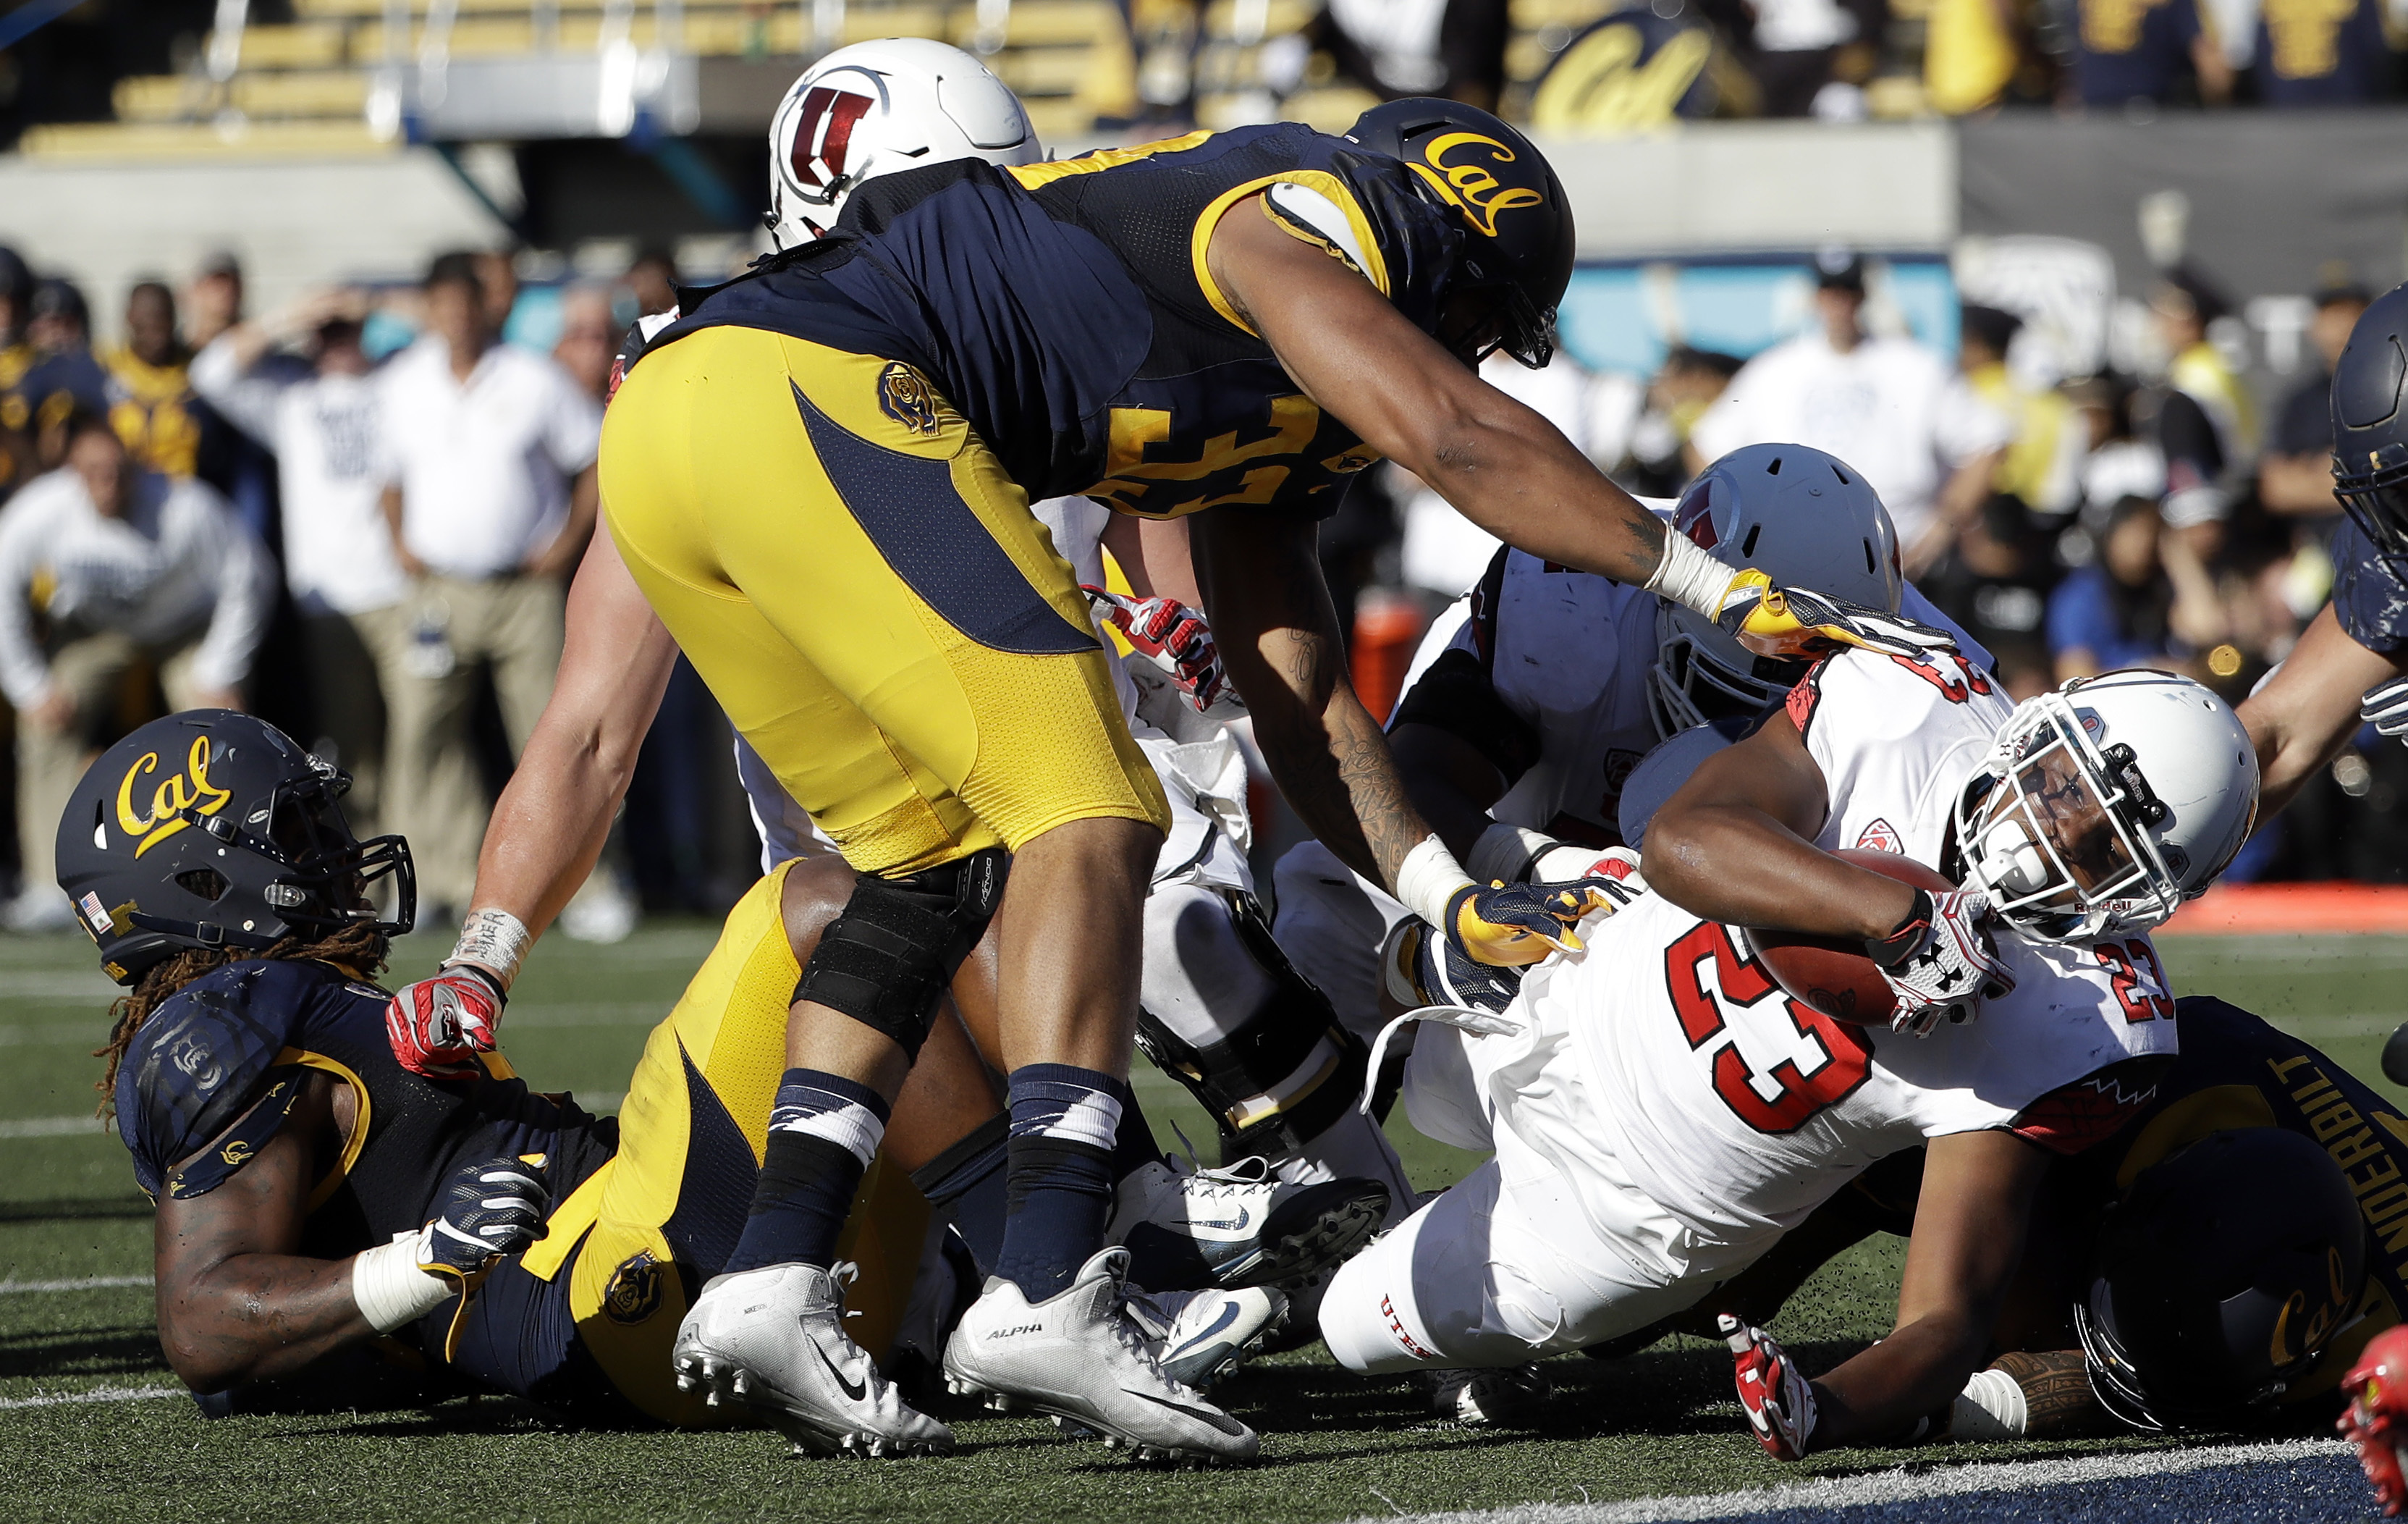 Utah running back Armand Shyne (23) scores on a 4-yard rushing touchdown against California during the first half of an NCAA college football game Saturday, Oct. 1, 2016, in Berkeley, Calif. (AP Photo/Marcio Jose Sanchez)